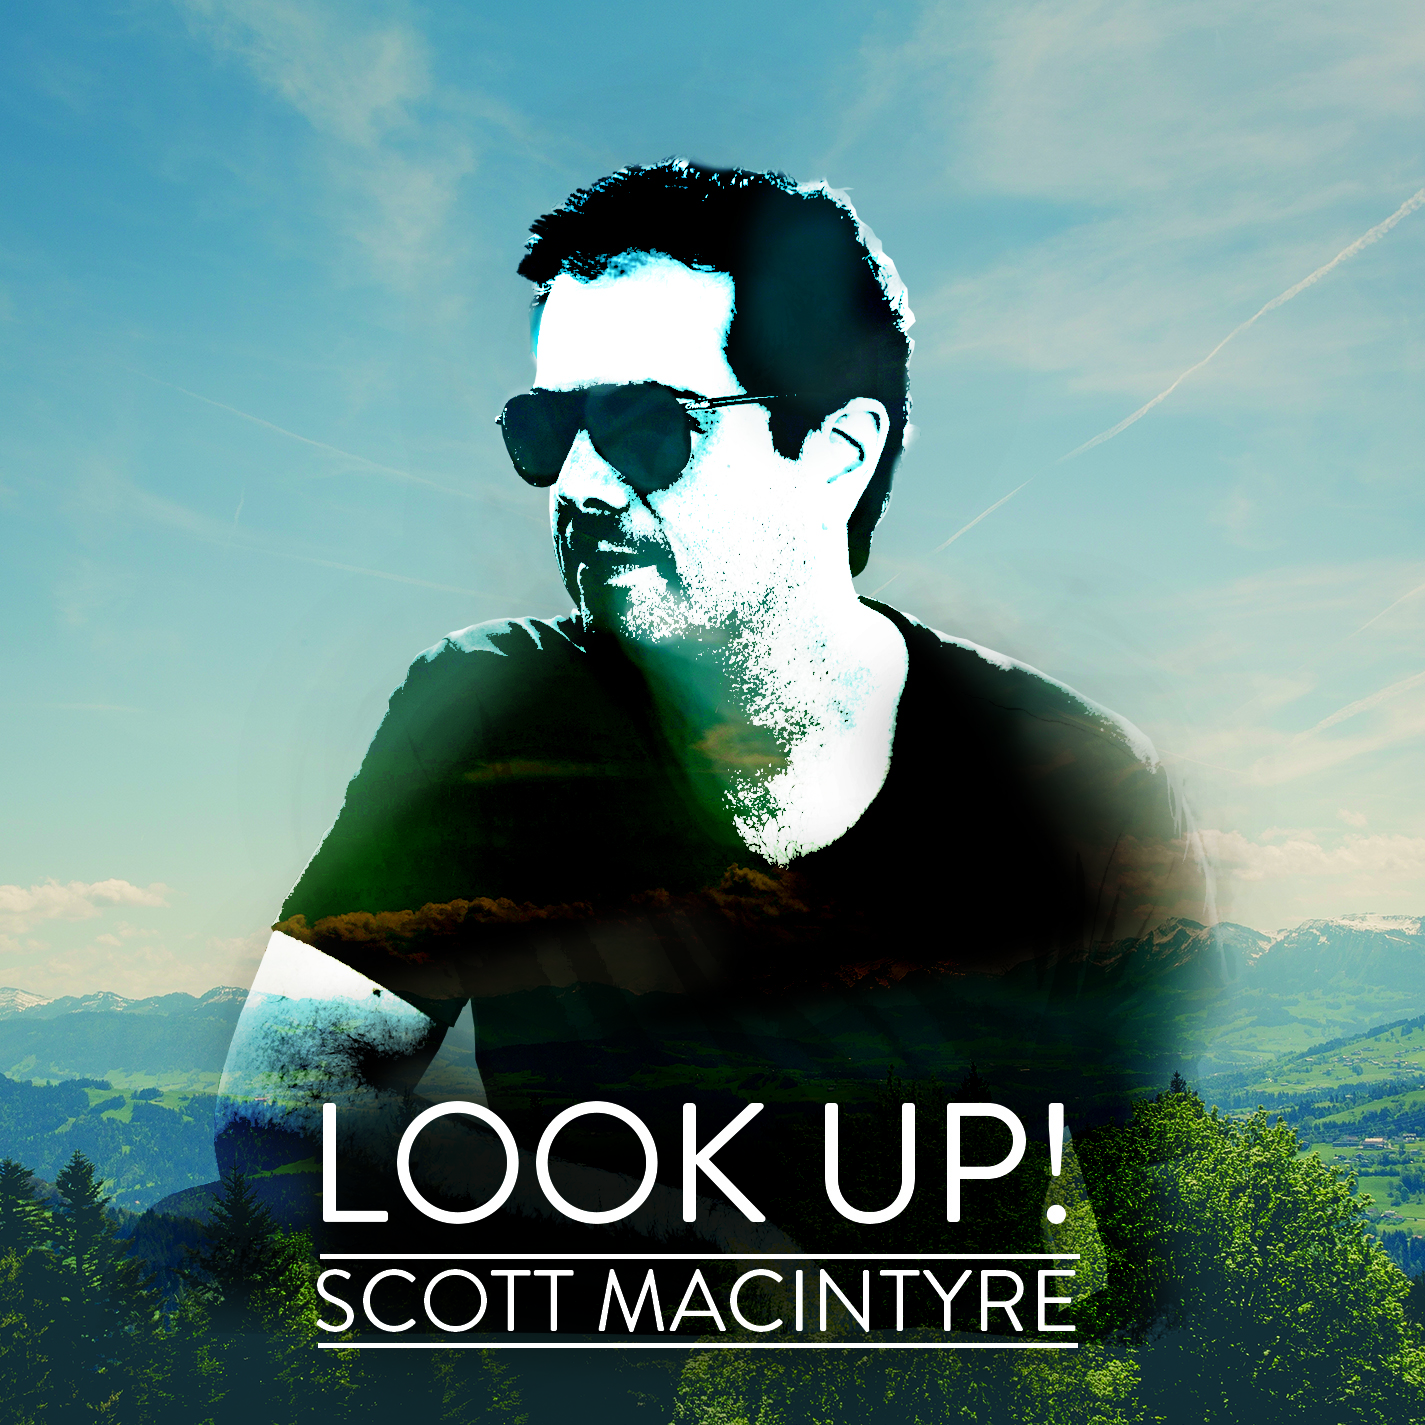 AMERICAN IDOL'S SCOTT MACINTYRE RELEASES NEW RADIO SINGLE